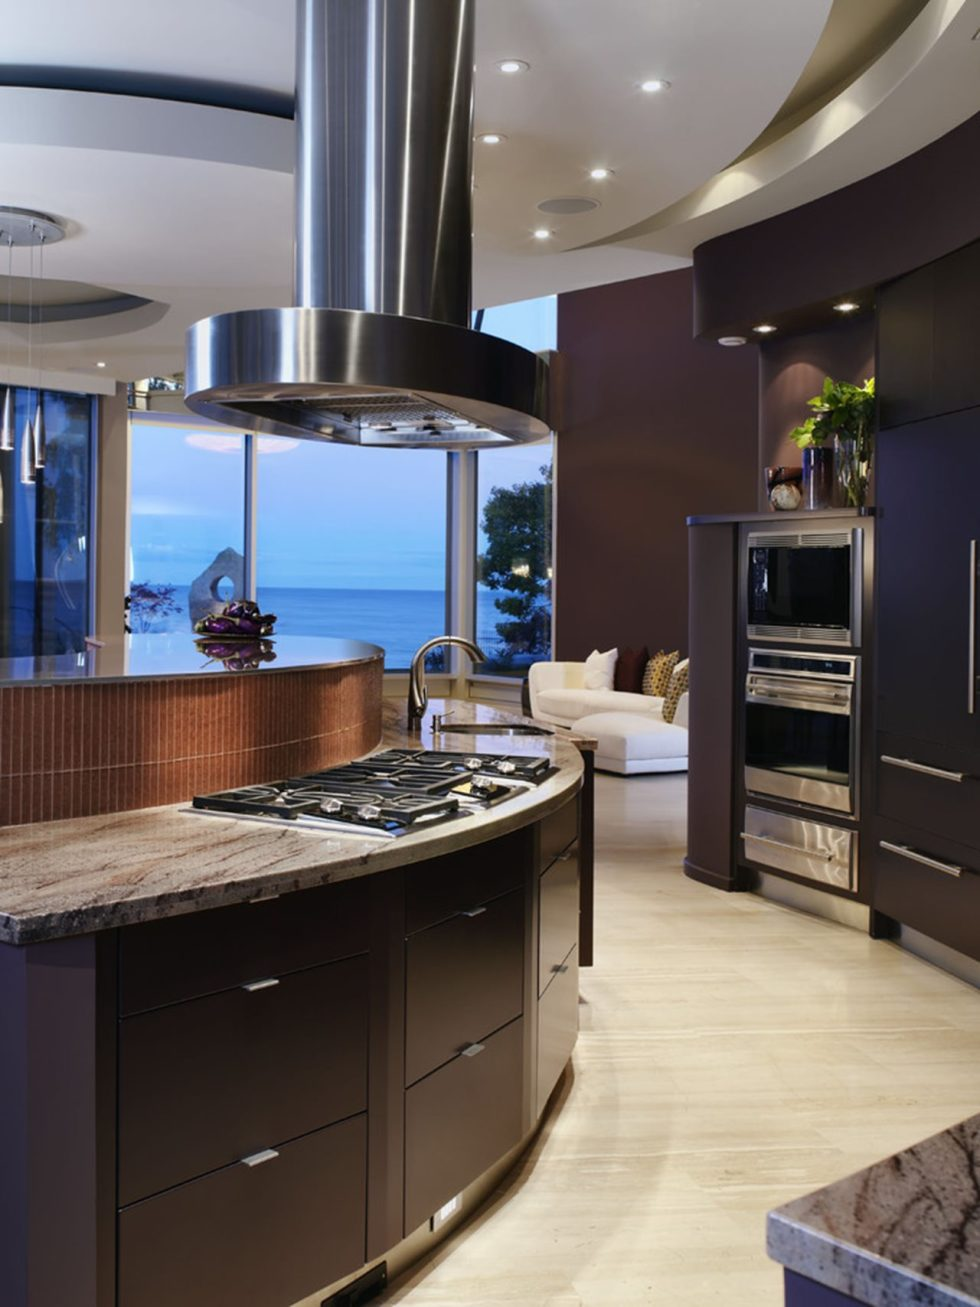 High-Tech Kitchen design ideas